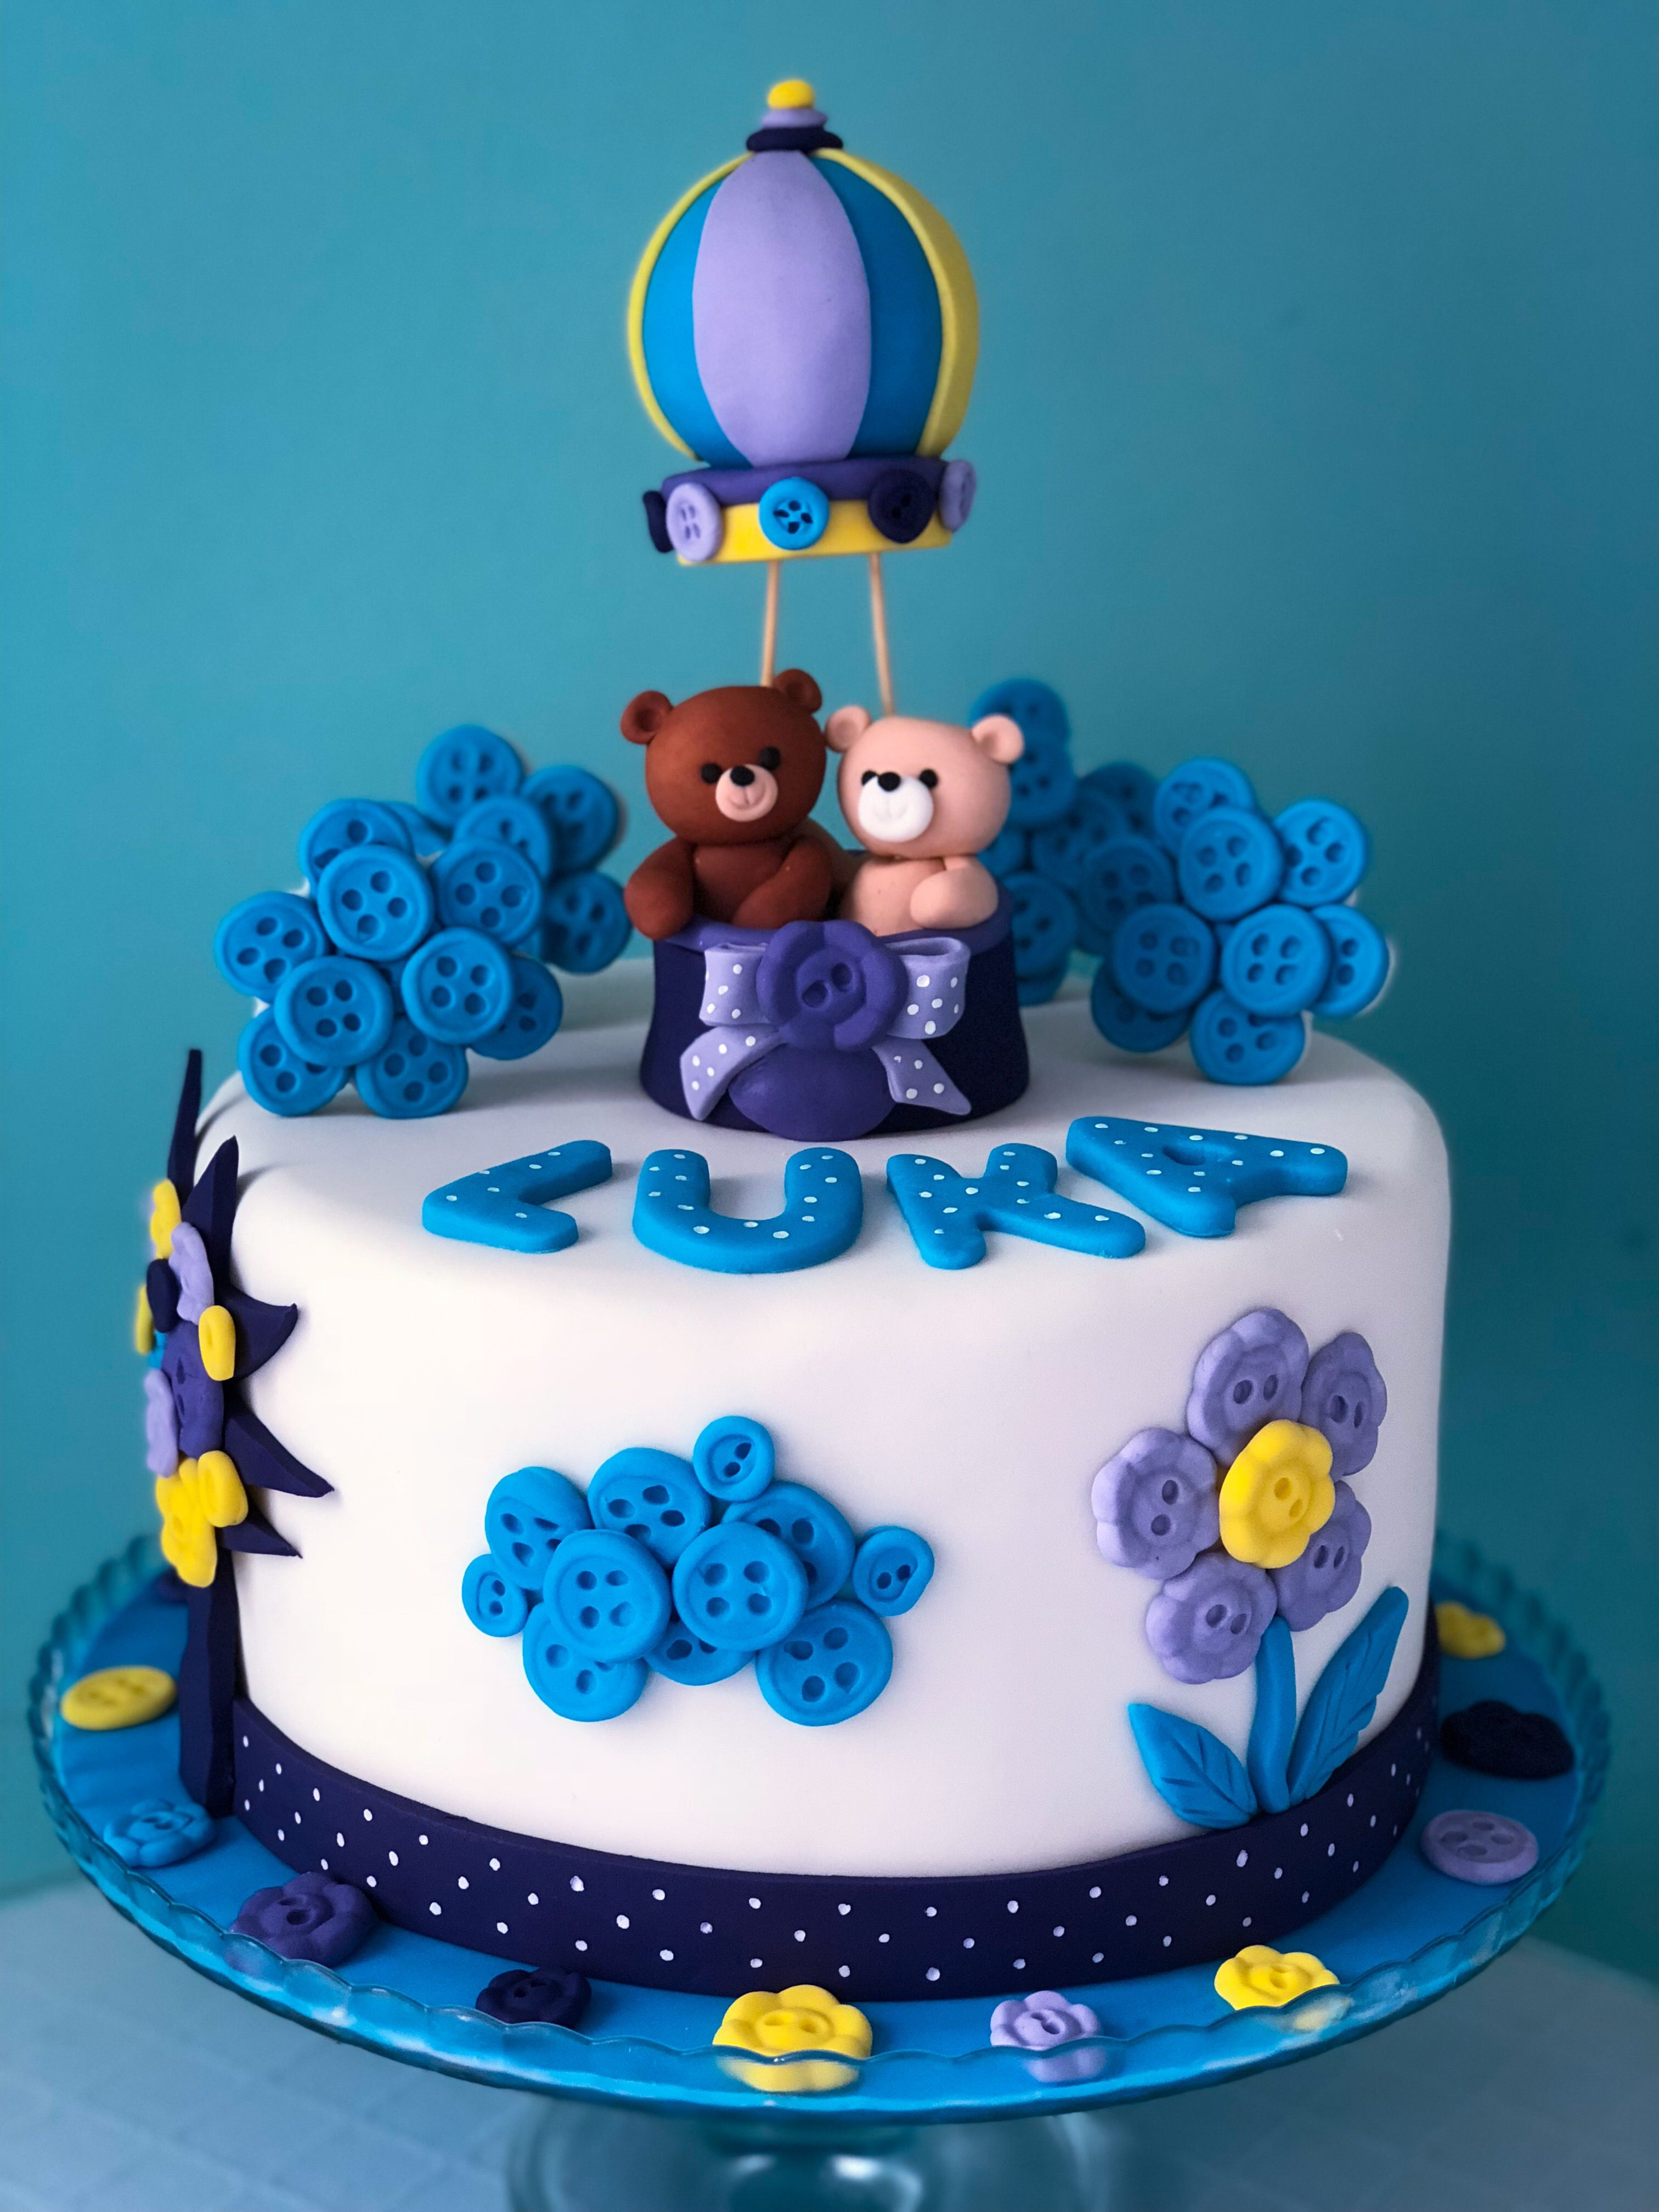 Donald duck birthday cake - Cake by Mocart DH   Duck